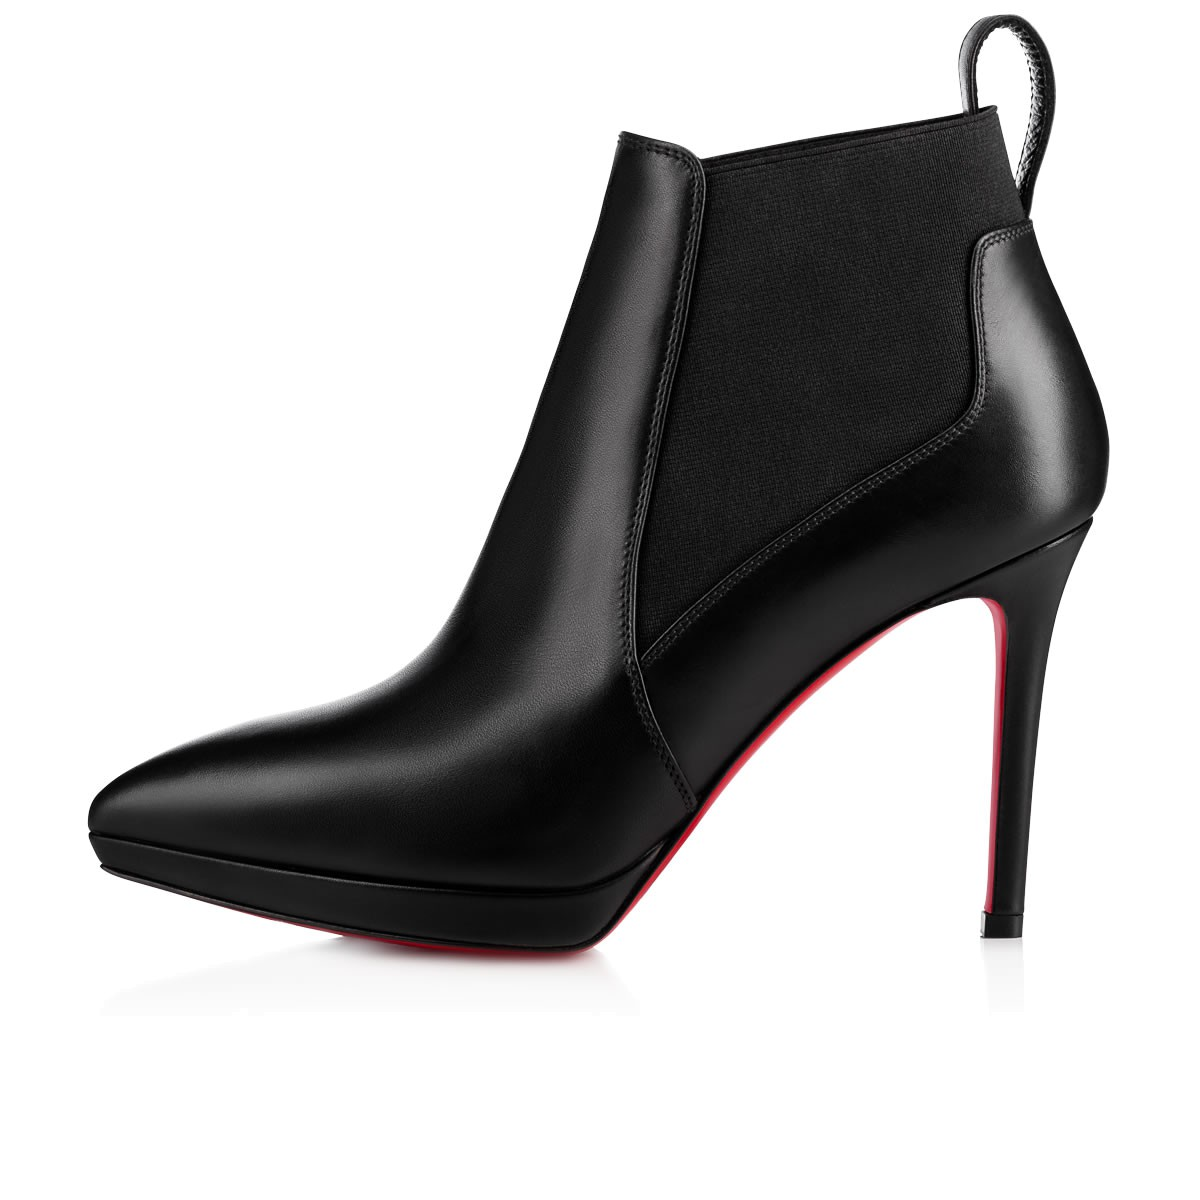 39a651a8048b Ankle Boots · Tall Boots. Crochinetta 100 mm. Shoes - Crochinetta - Christian  Louboutin Shoes - Crochinetta - Christian Louboutin ...